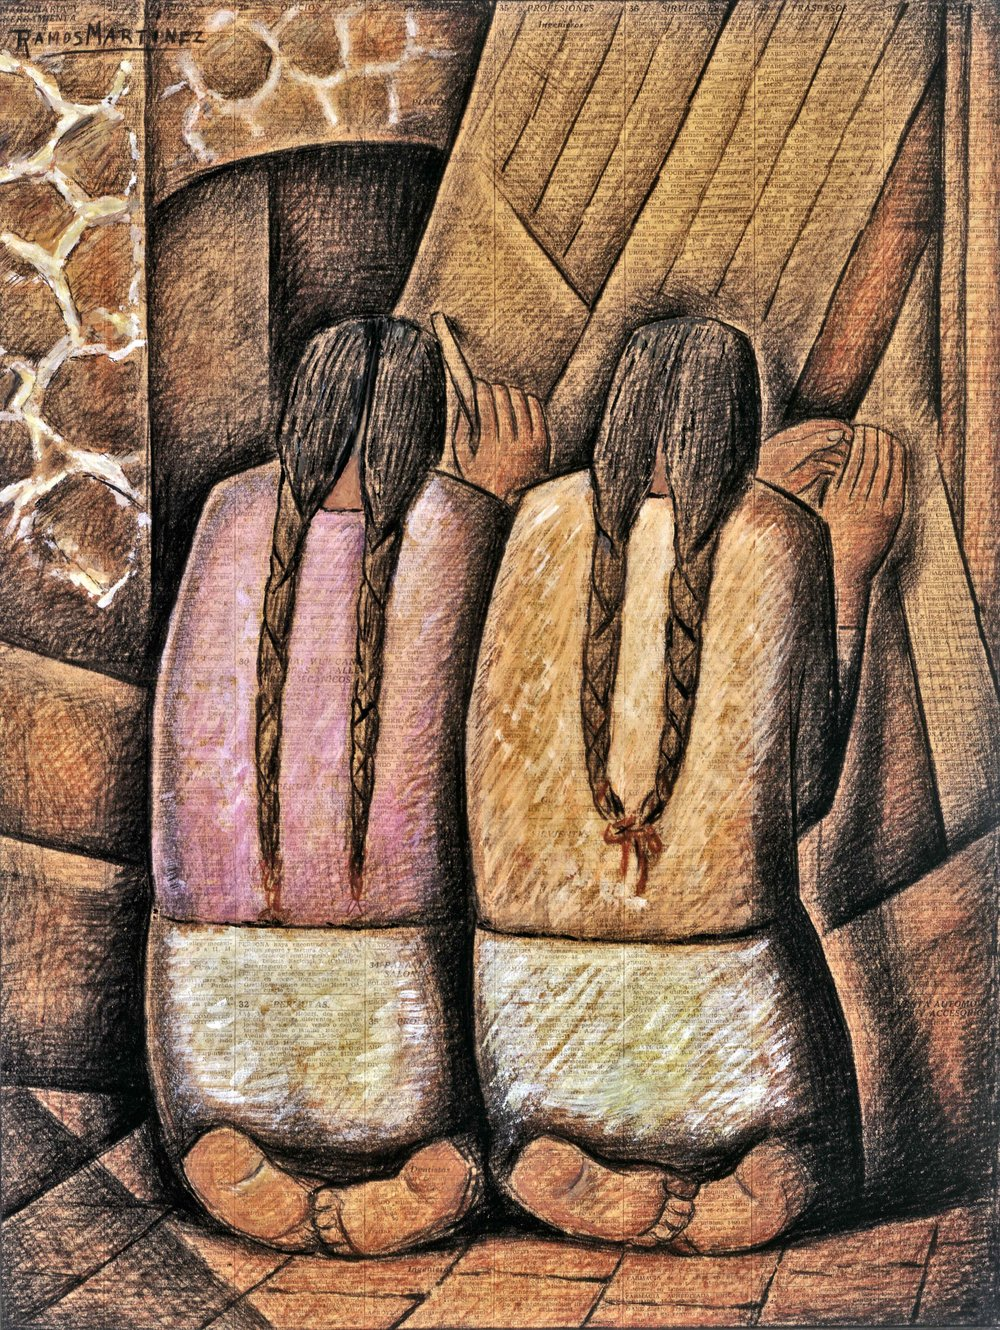 Las Tejedoras / The Weavers  1944 tempera and charcoal on newsprint / temple y carbón sobre papel periódico (El Universal, September 3, 1944) 21 x 16 inches; 53.3 x 40.6 centímetros University of Arizona Museum of Art